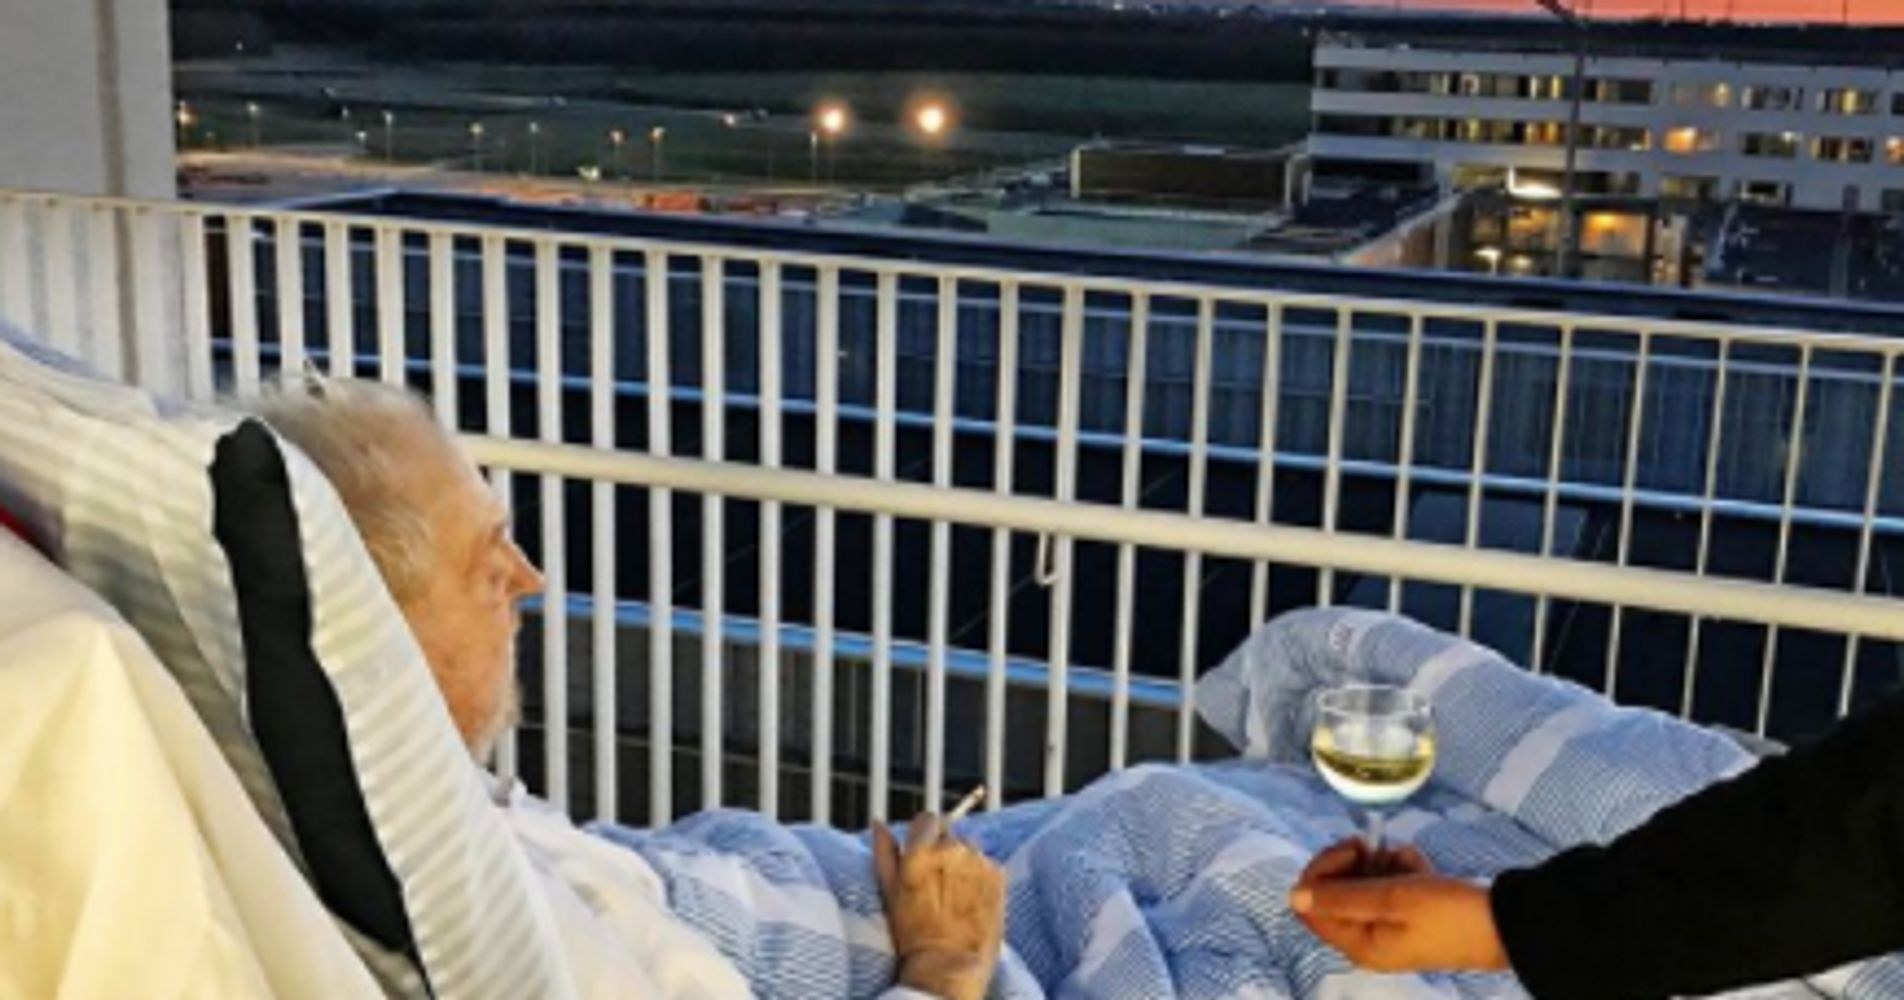 Man Dying Cigarette Wine Hospital Bed